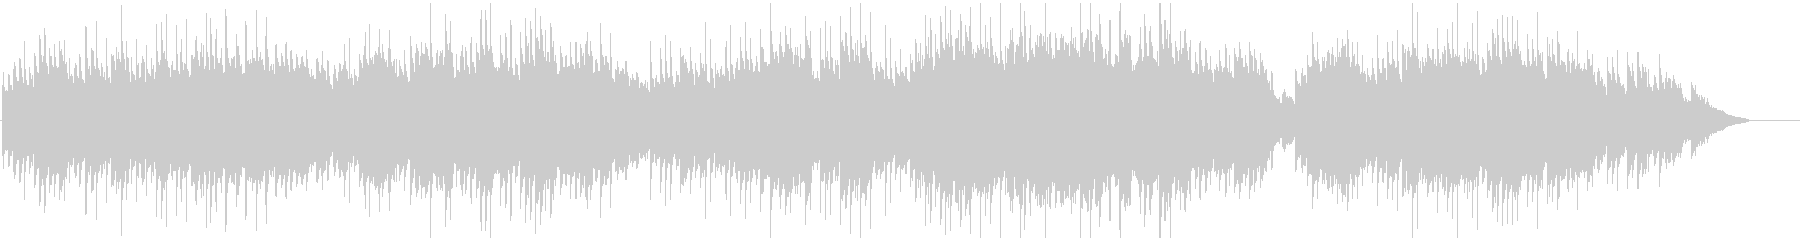 Nostalgic BGM's unreproduced waveform